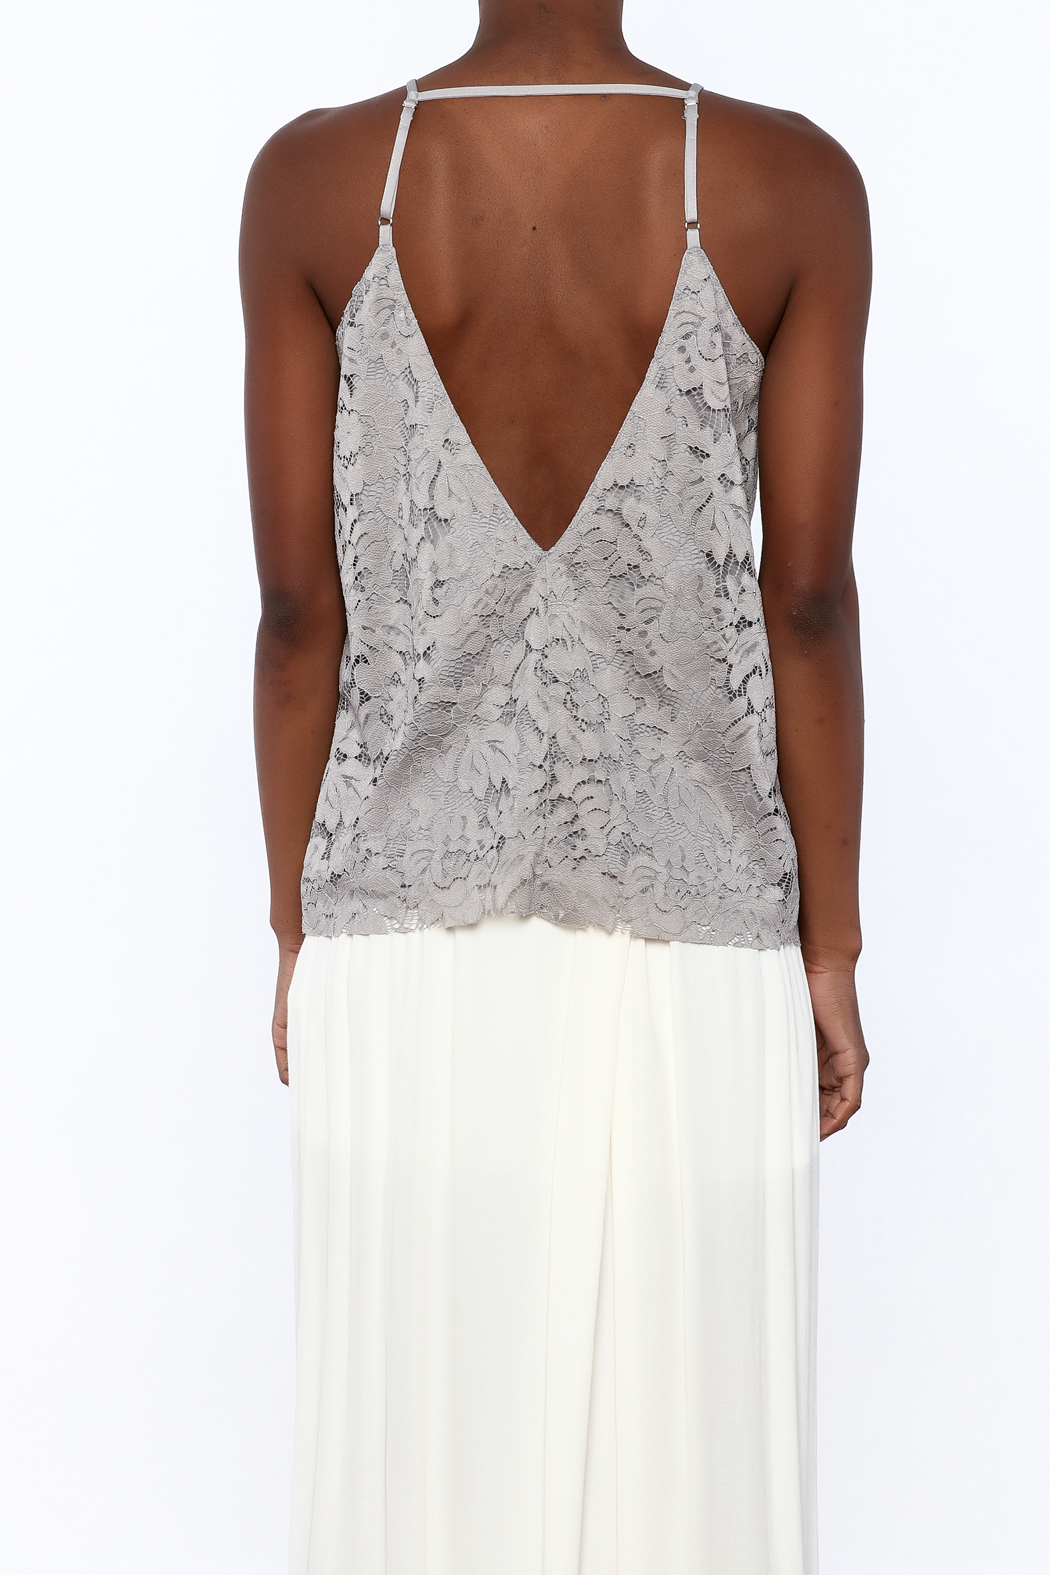 Gina Louise Cascading Roses Top - Back Cropped Image